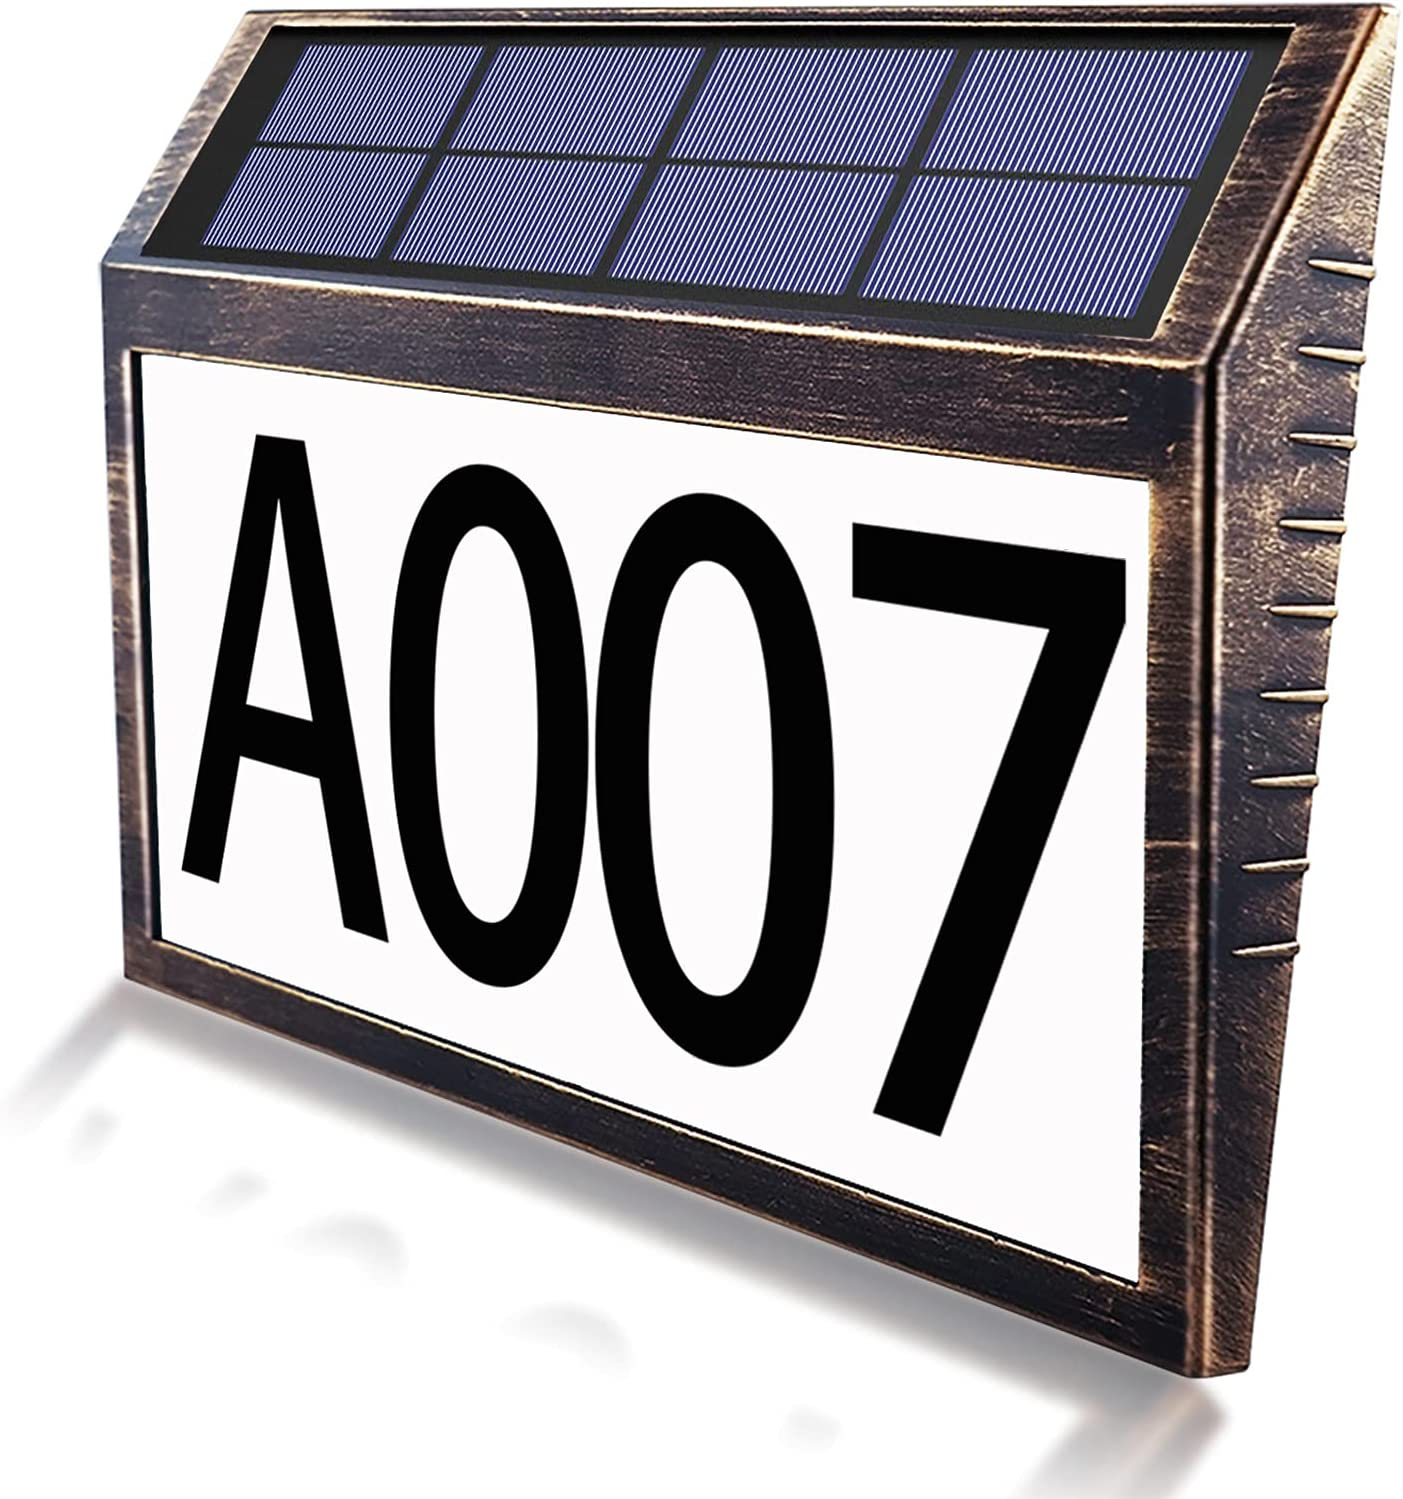 House Numbers for Outside,Solar Power 10 LED Light Address Numbe